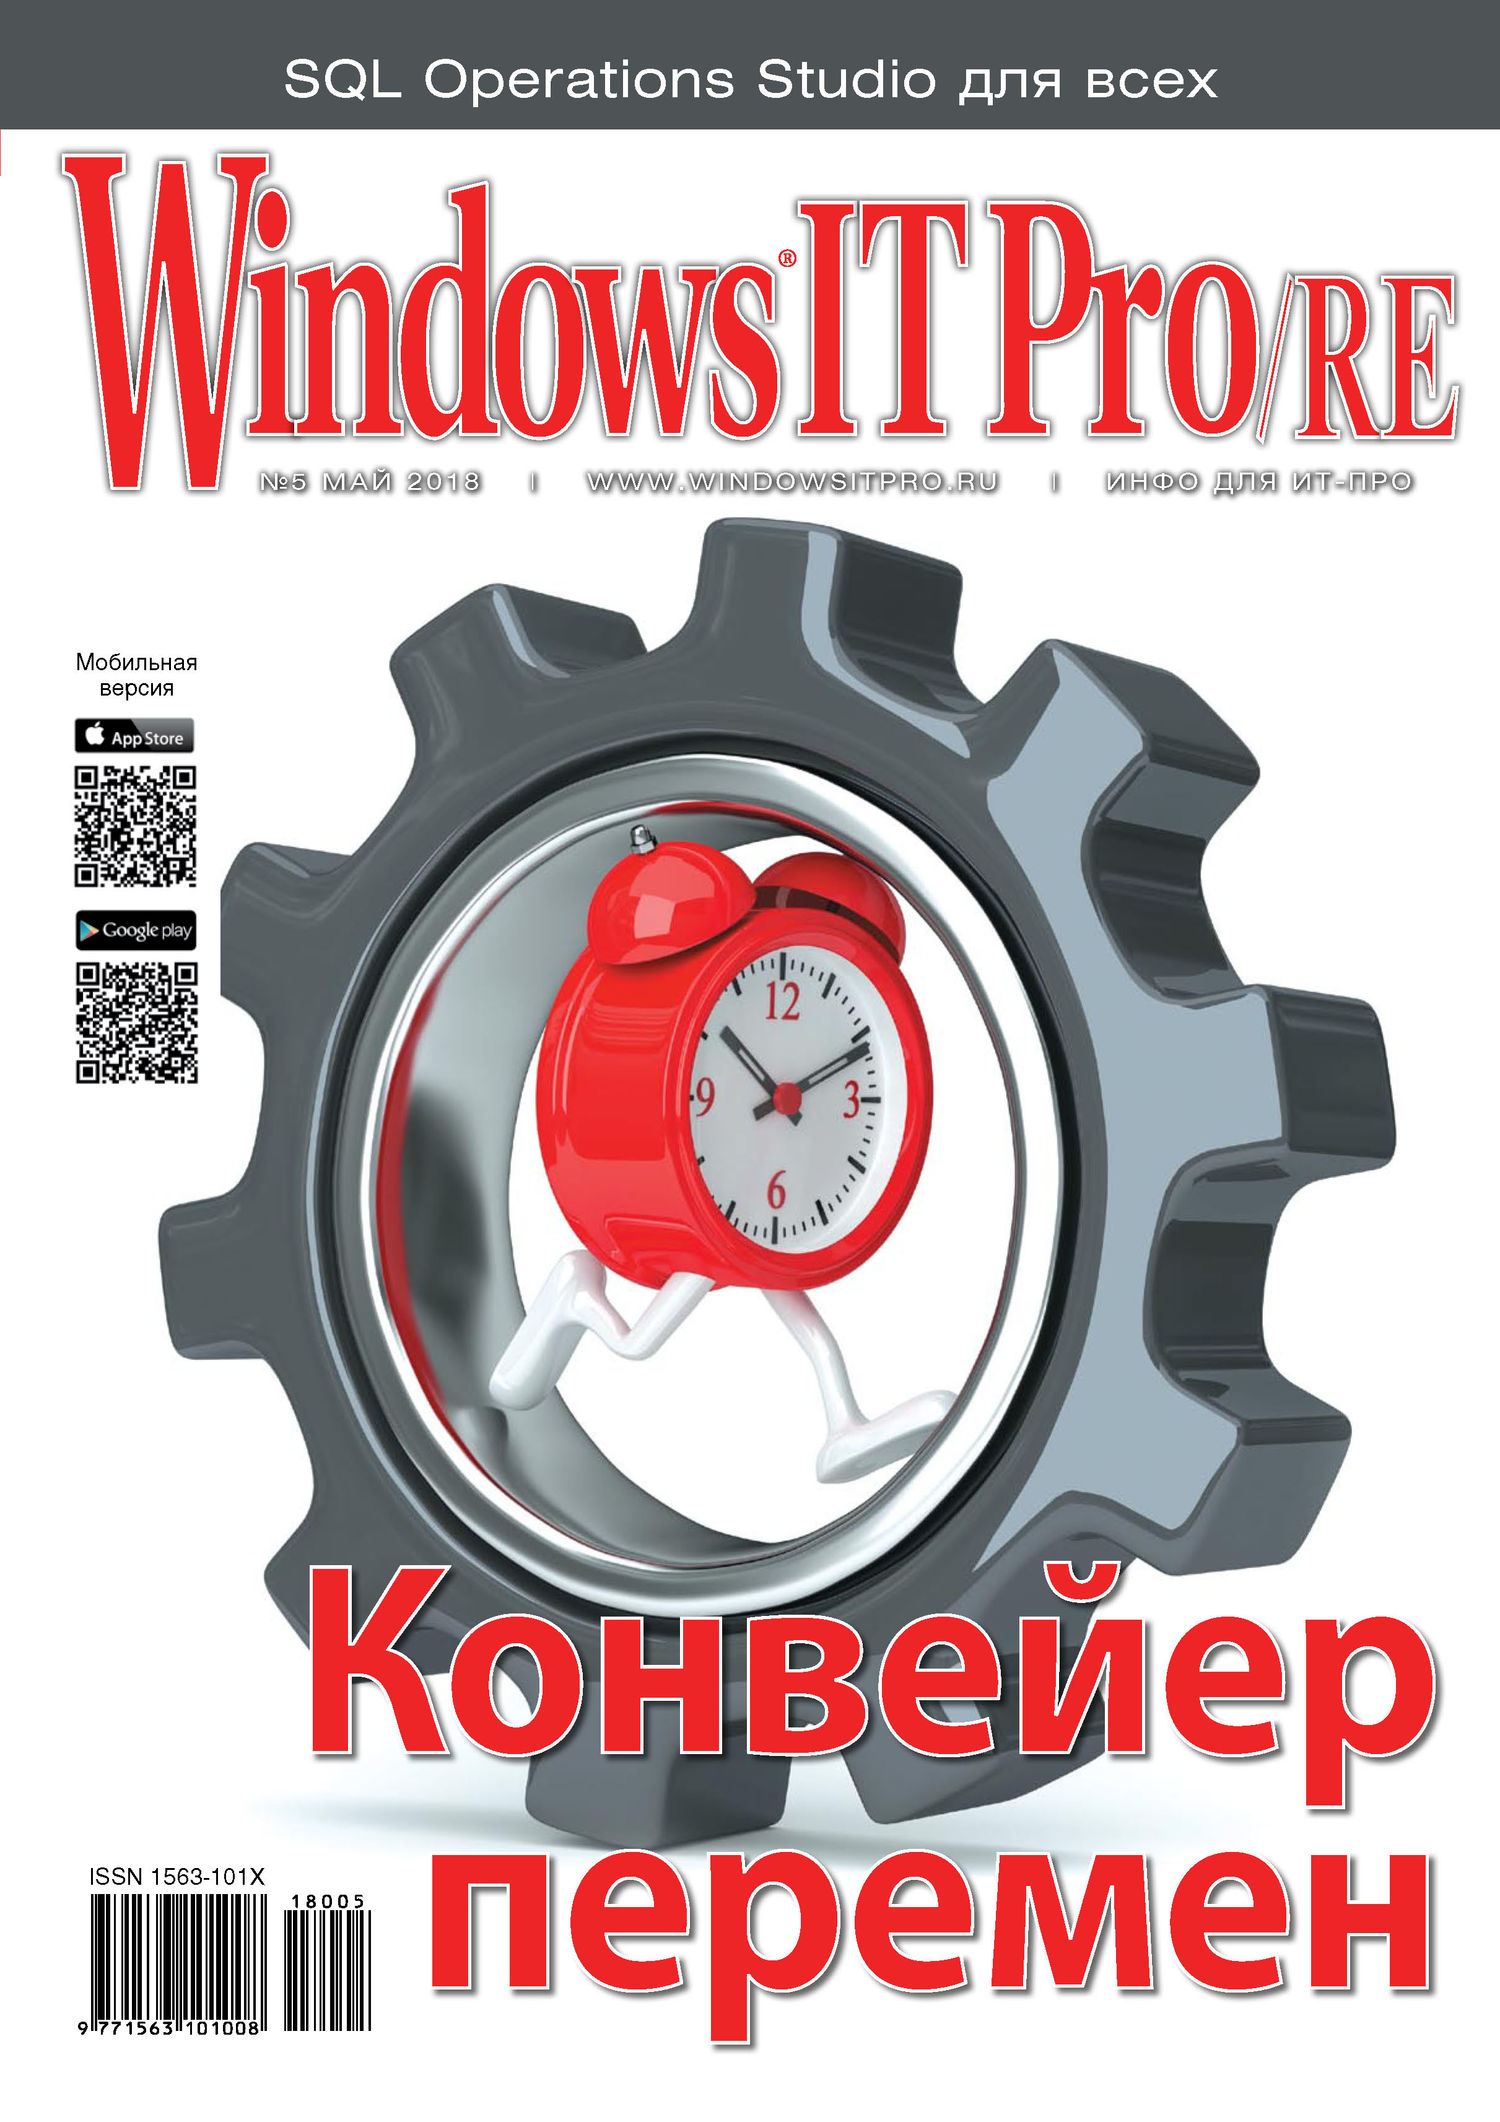 Windows IT Pro/RE №05/2018